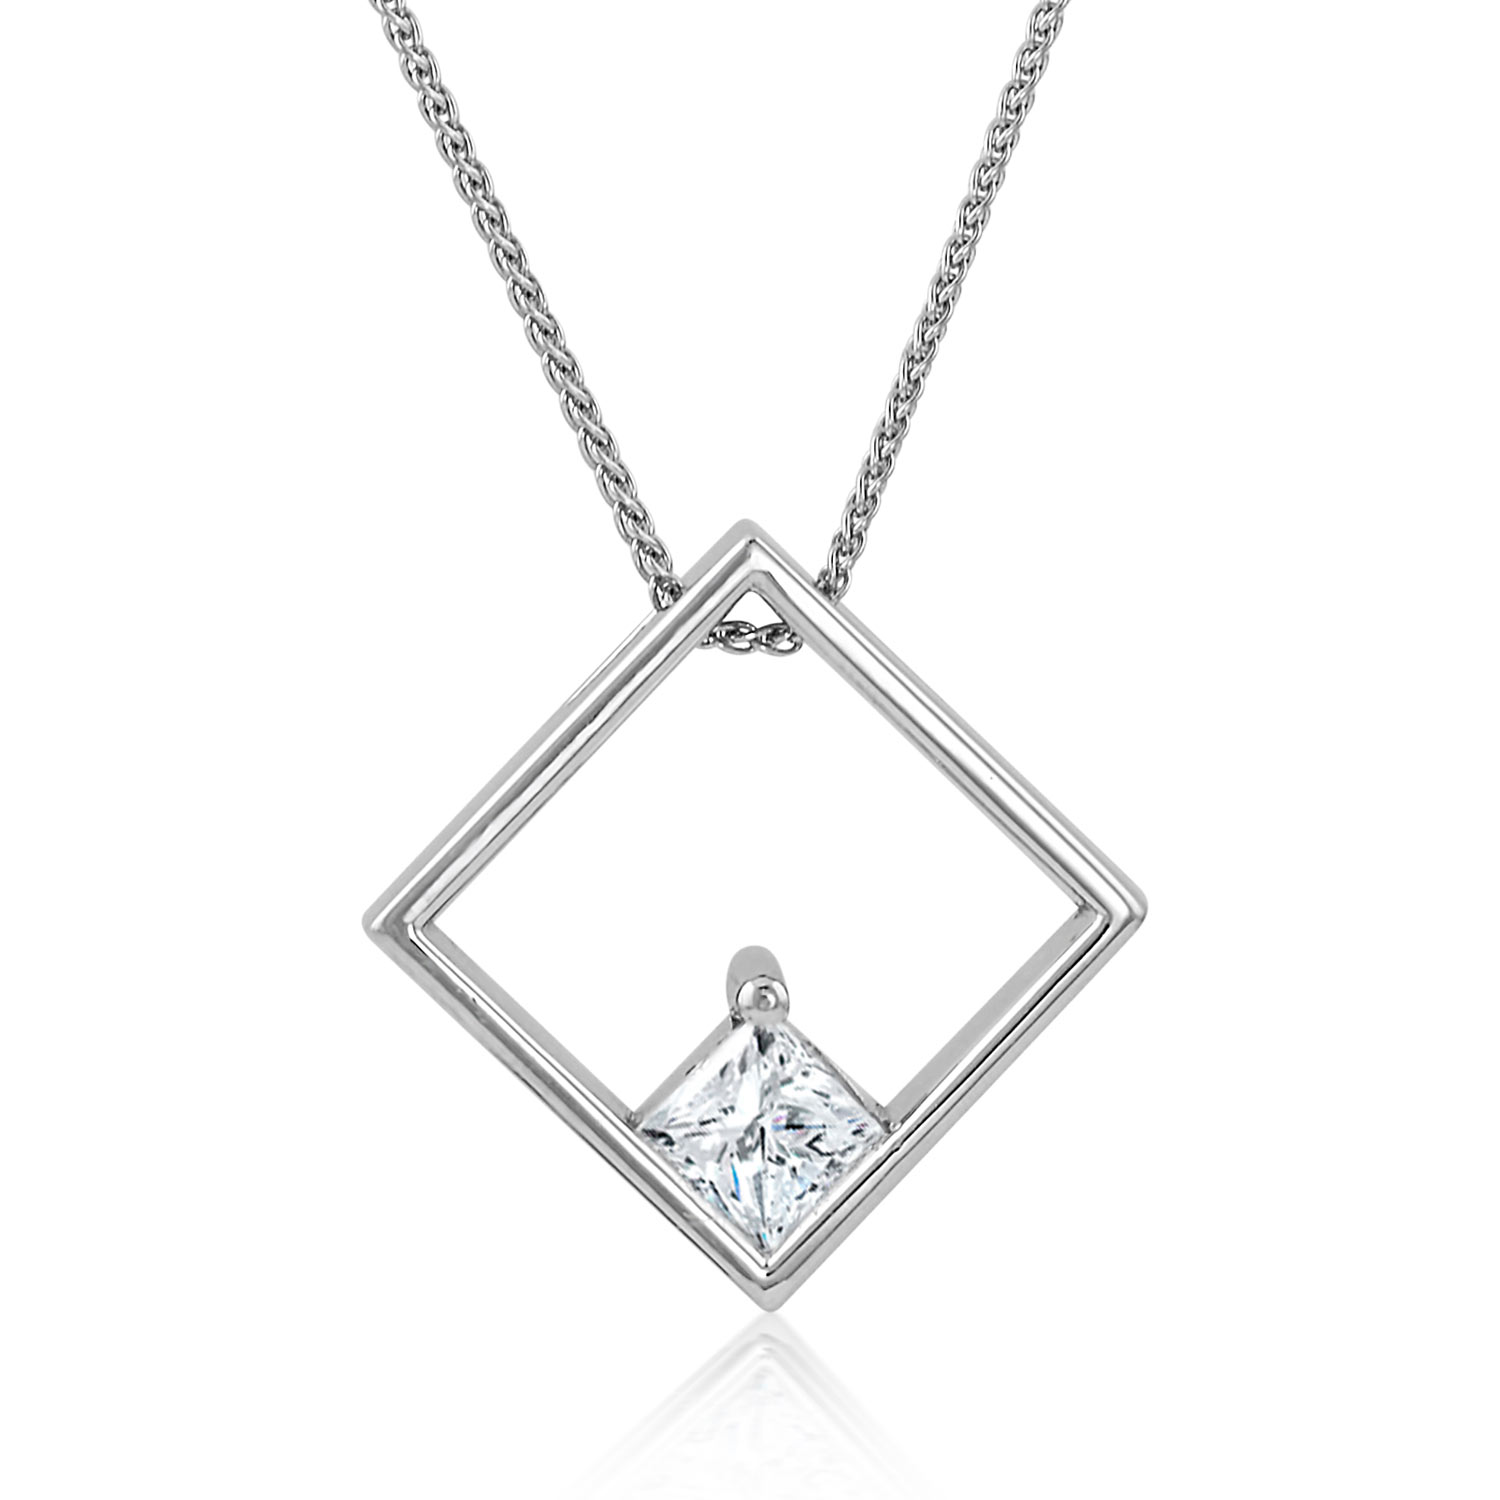 14k White Gold Princess Cut Square Necklace Mark Michael Diamond